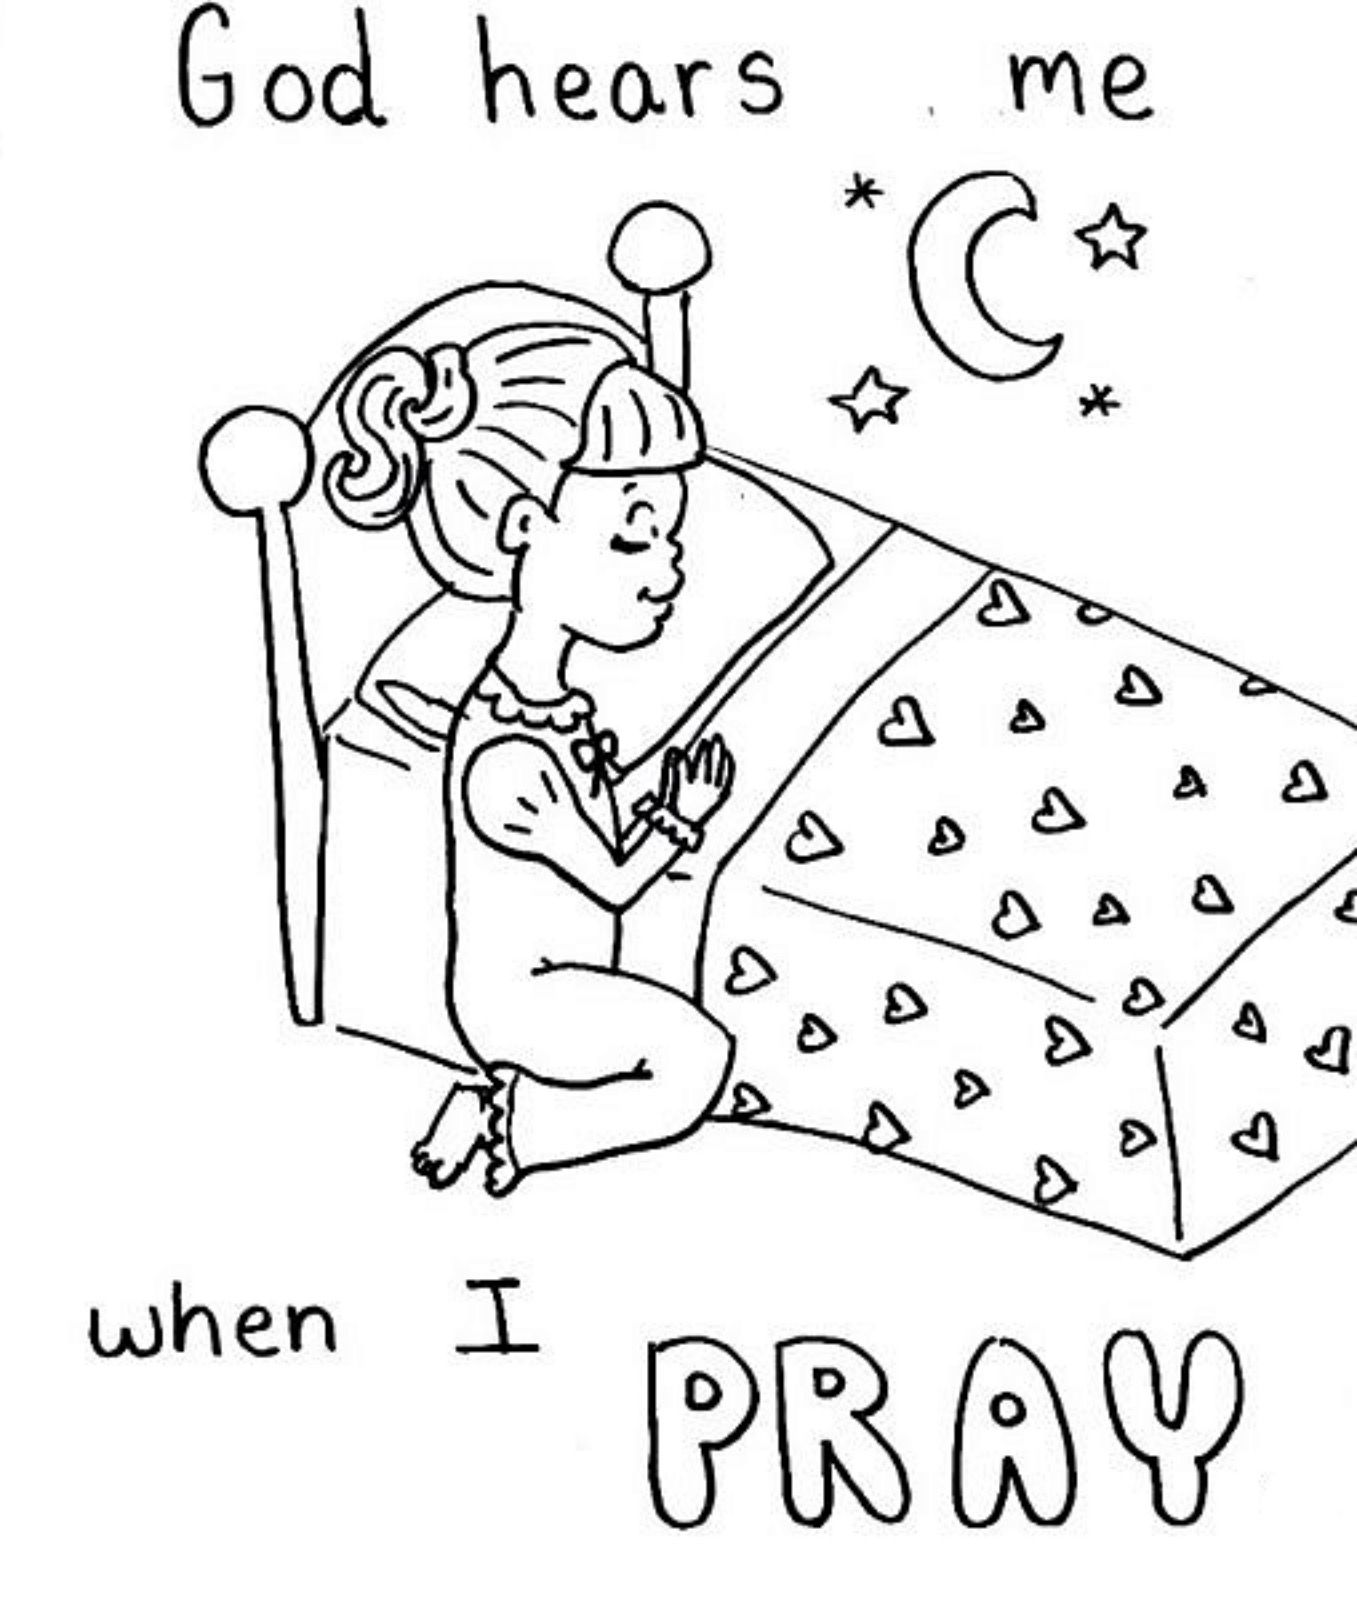 Pray coloring sheet (With images) Sunday school coloring